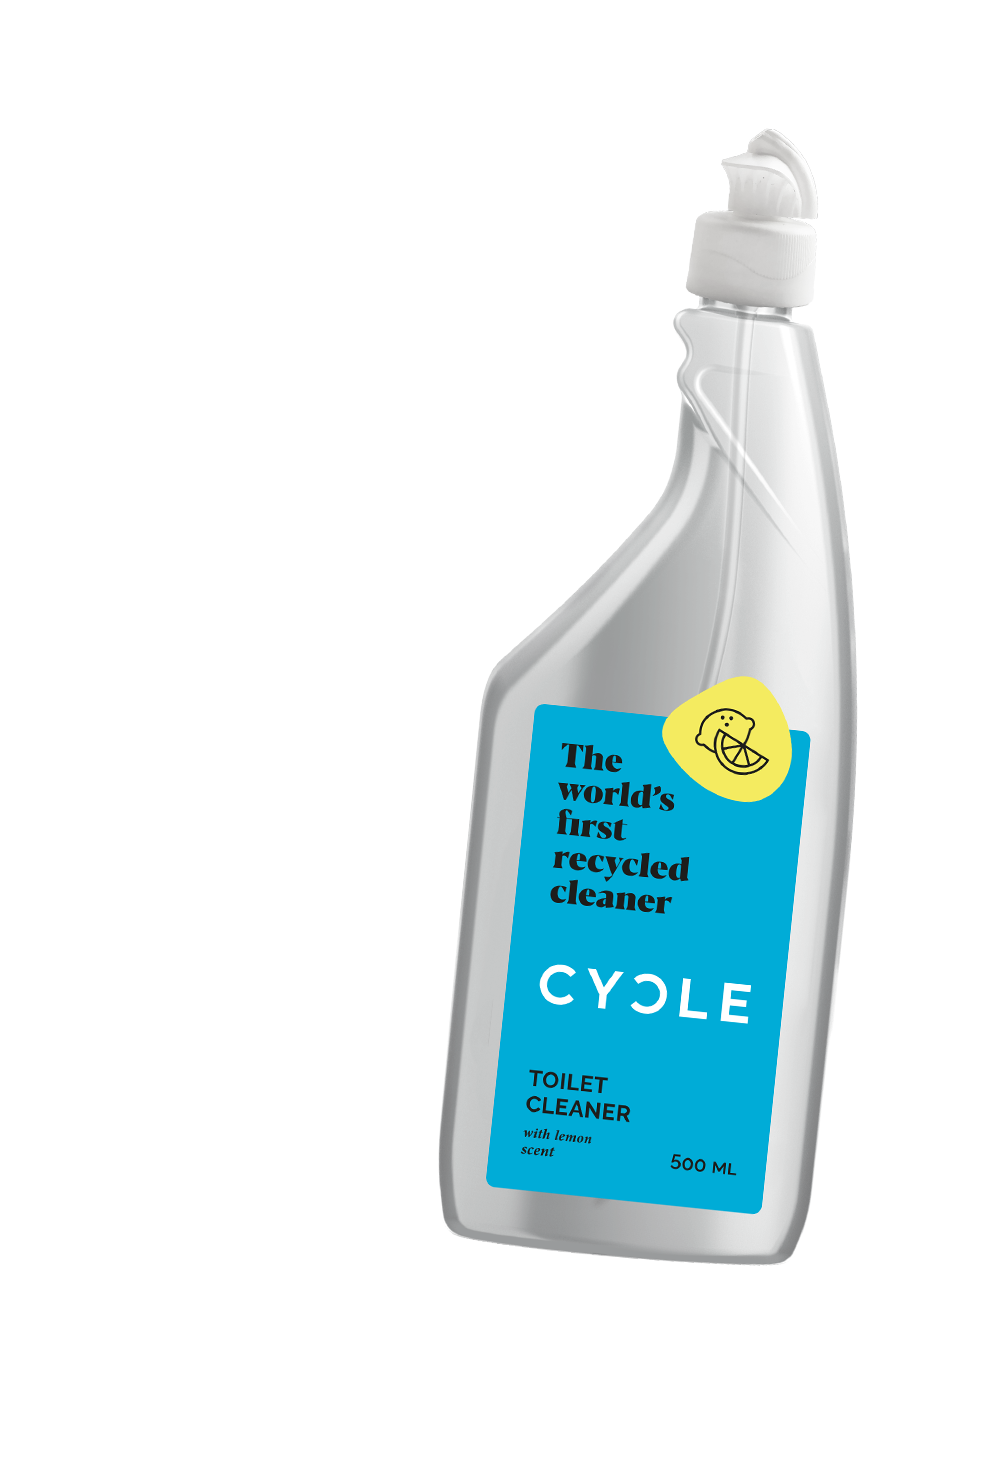 Cycle Toilet Cleaner